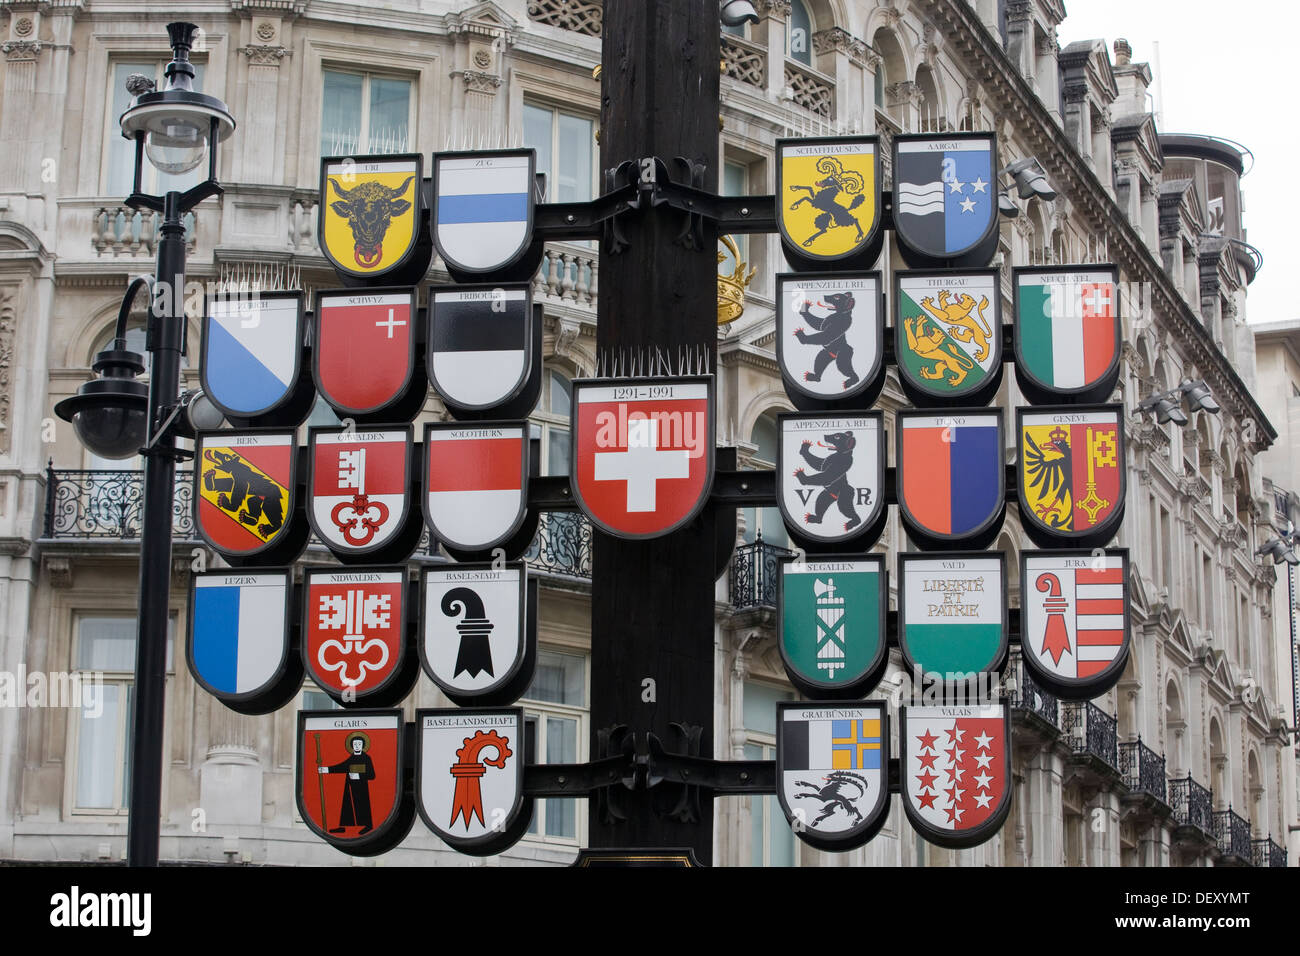 Plaques celebrating the Swiss British relationship in Leicester Square - Stock Image